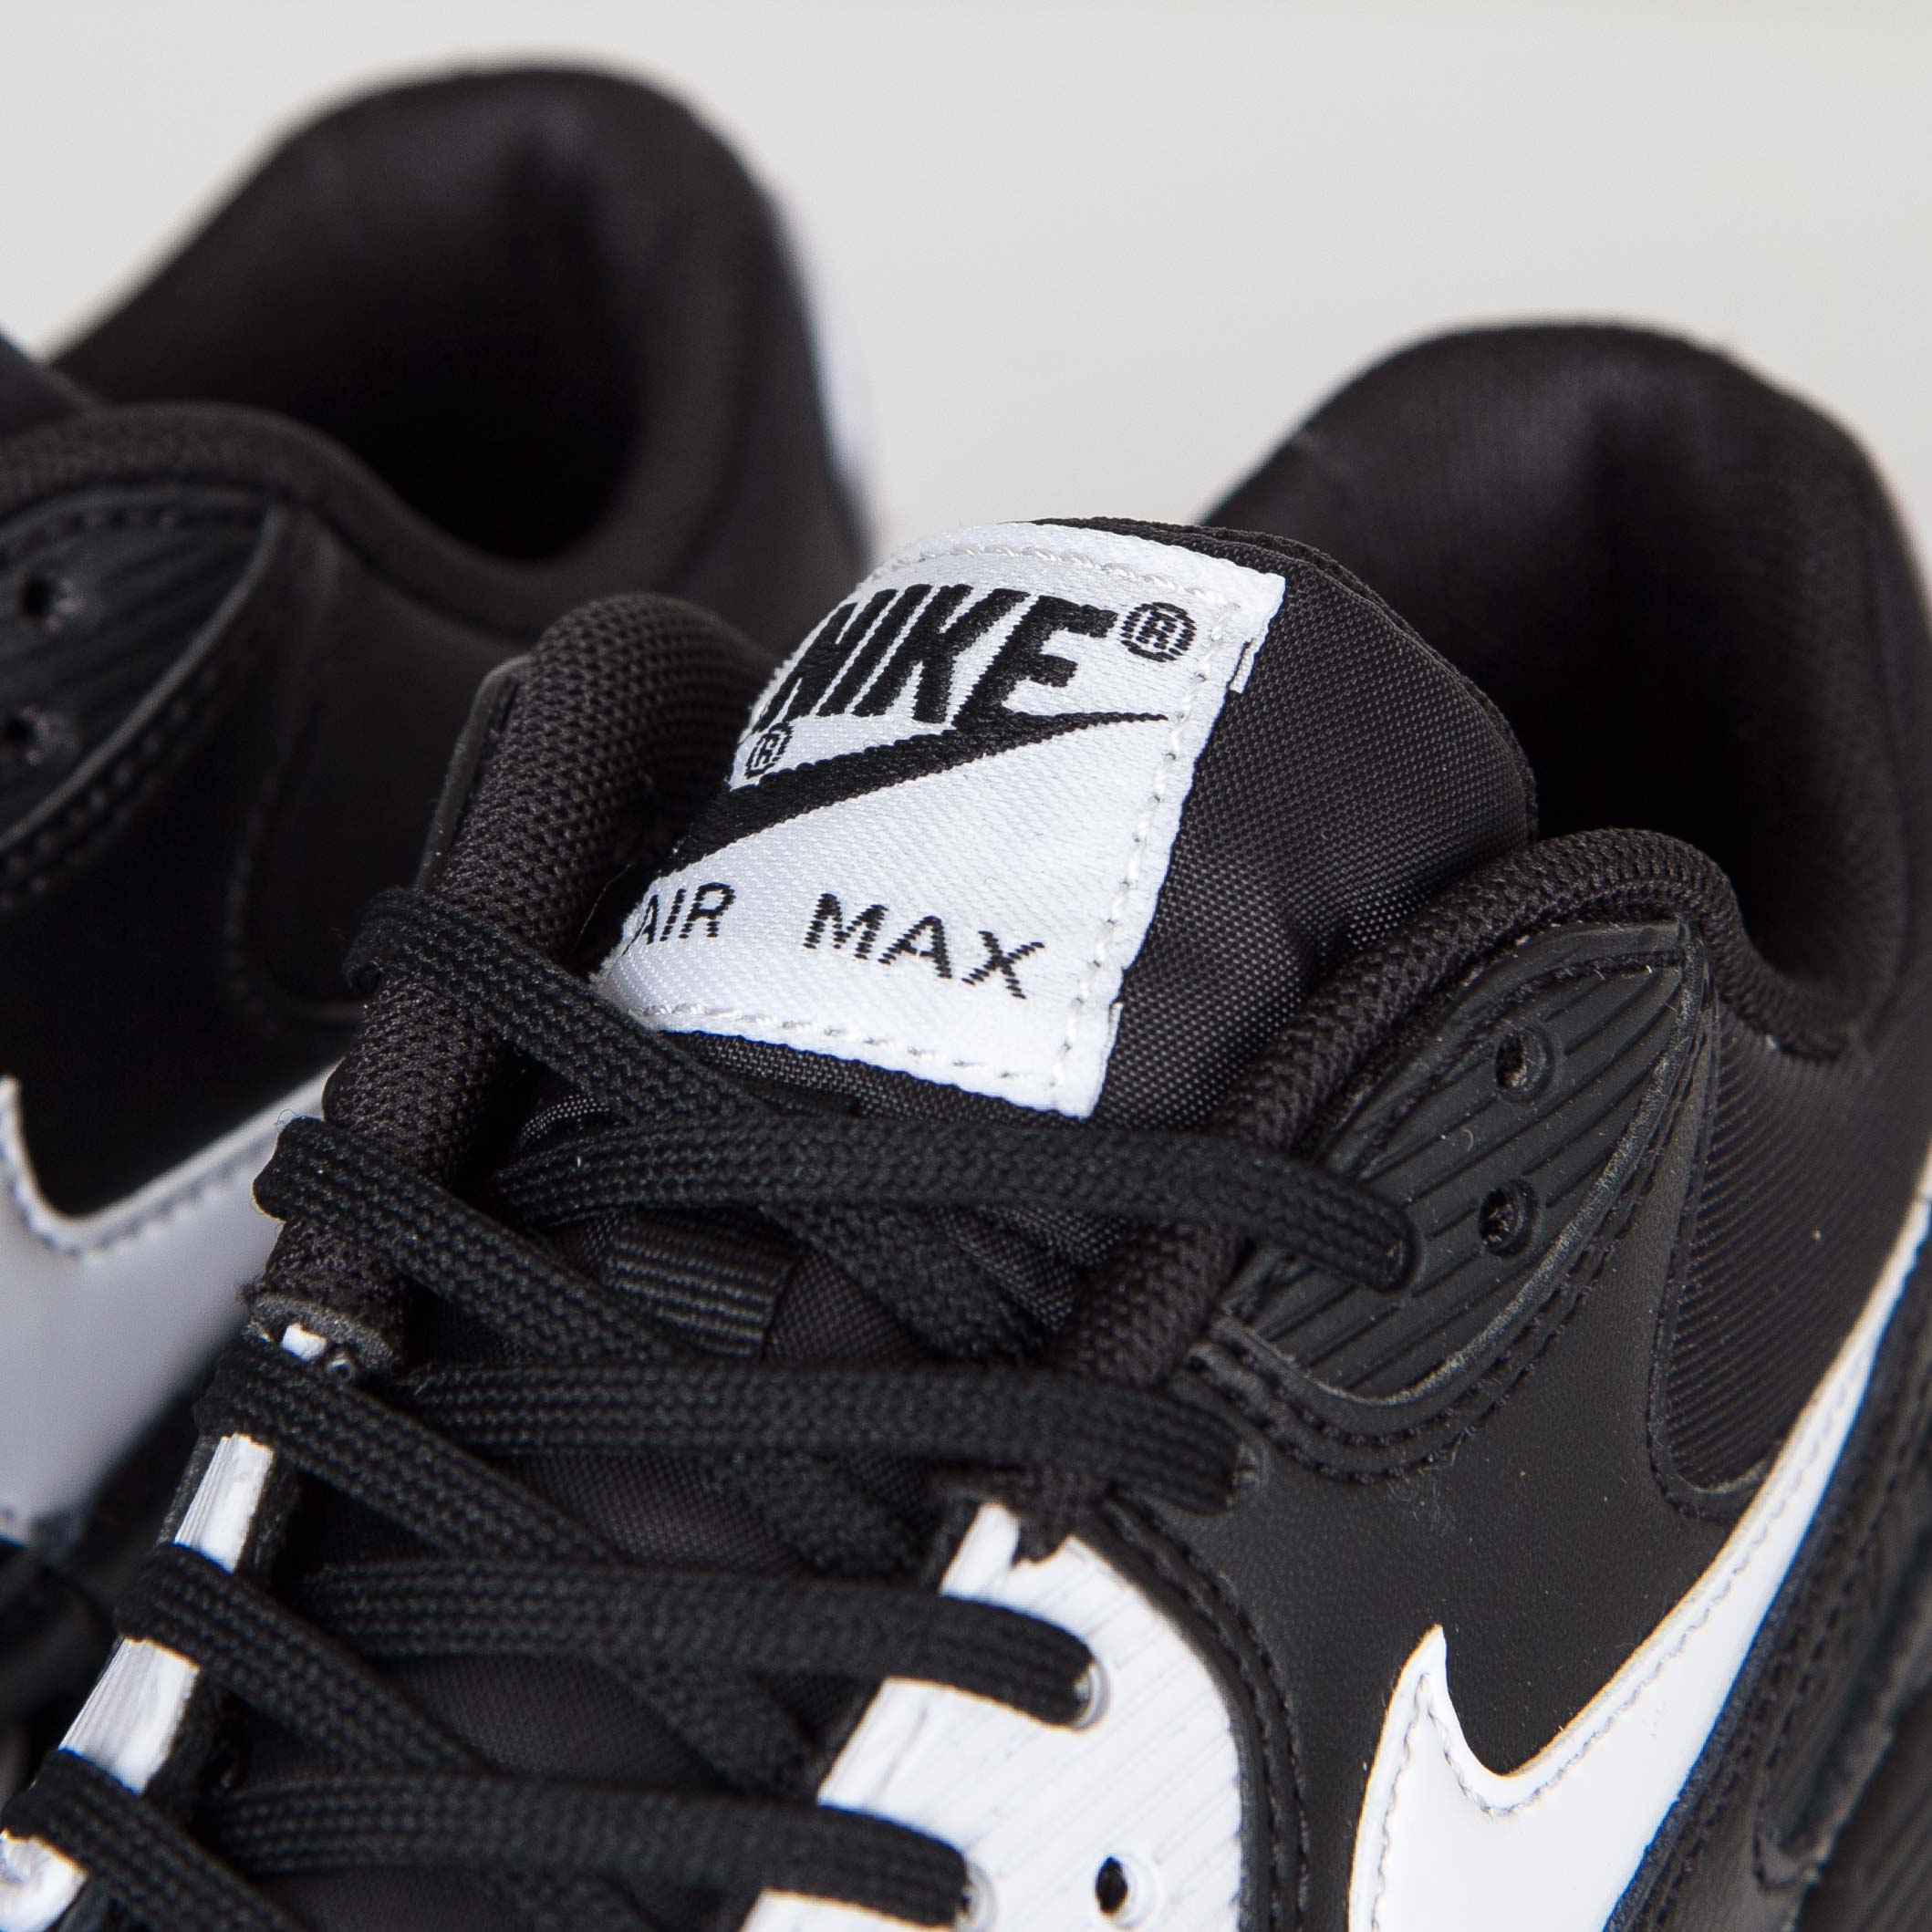 sports shoes 57811 5f85c Nike Wmns Air Max 90 Essential - 616730-023 - Sneakersnstuff   sneakers    streetwear online since 1999